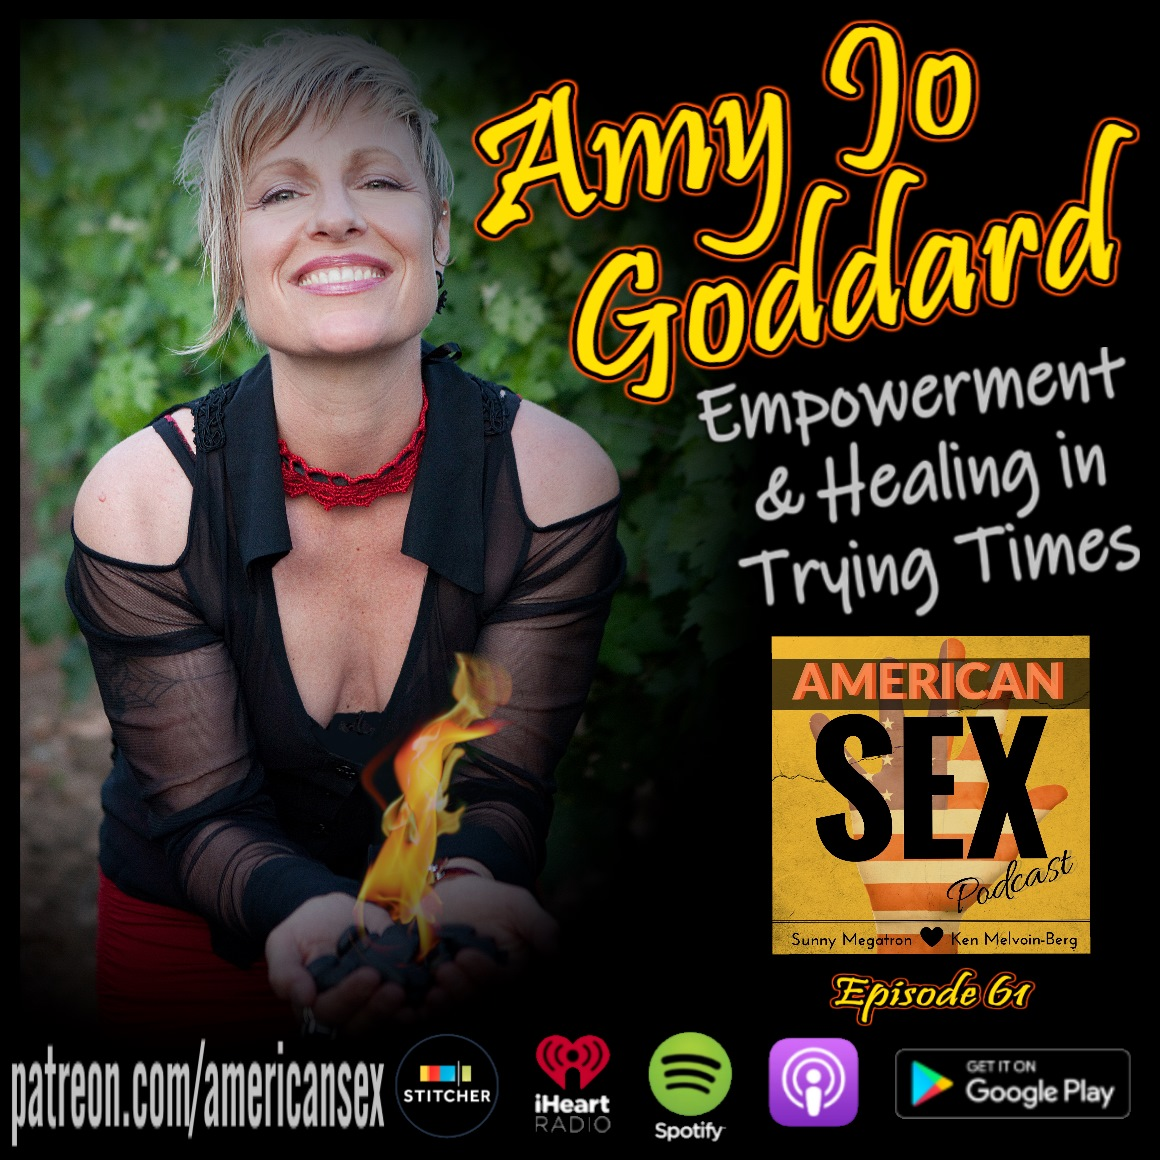 Amy Jo Goddard Fire Woman